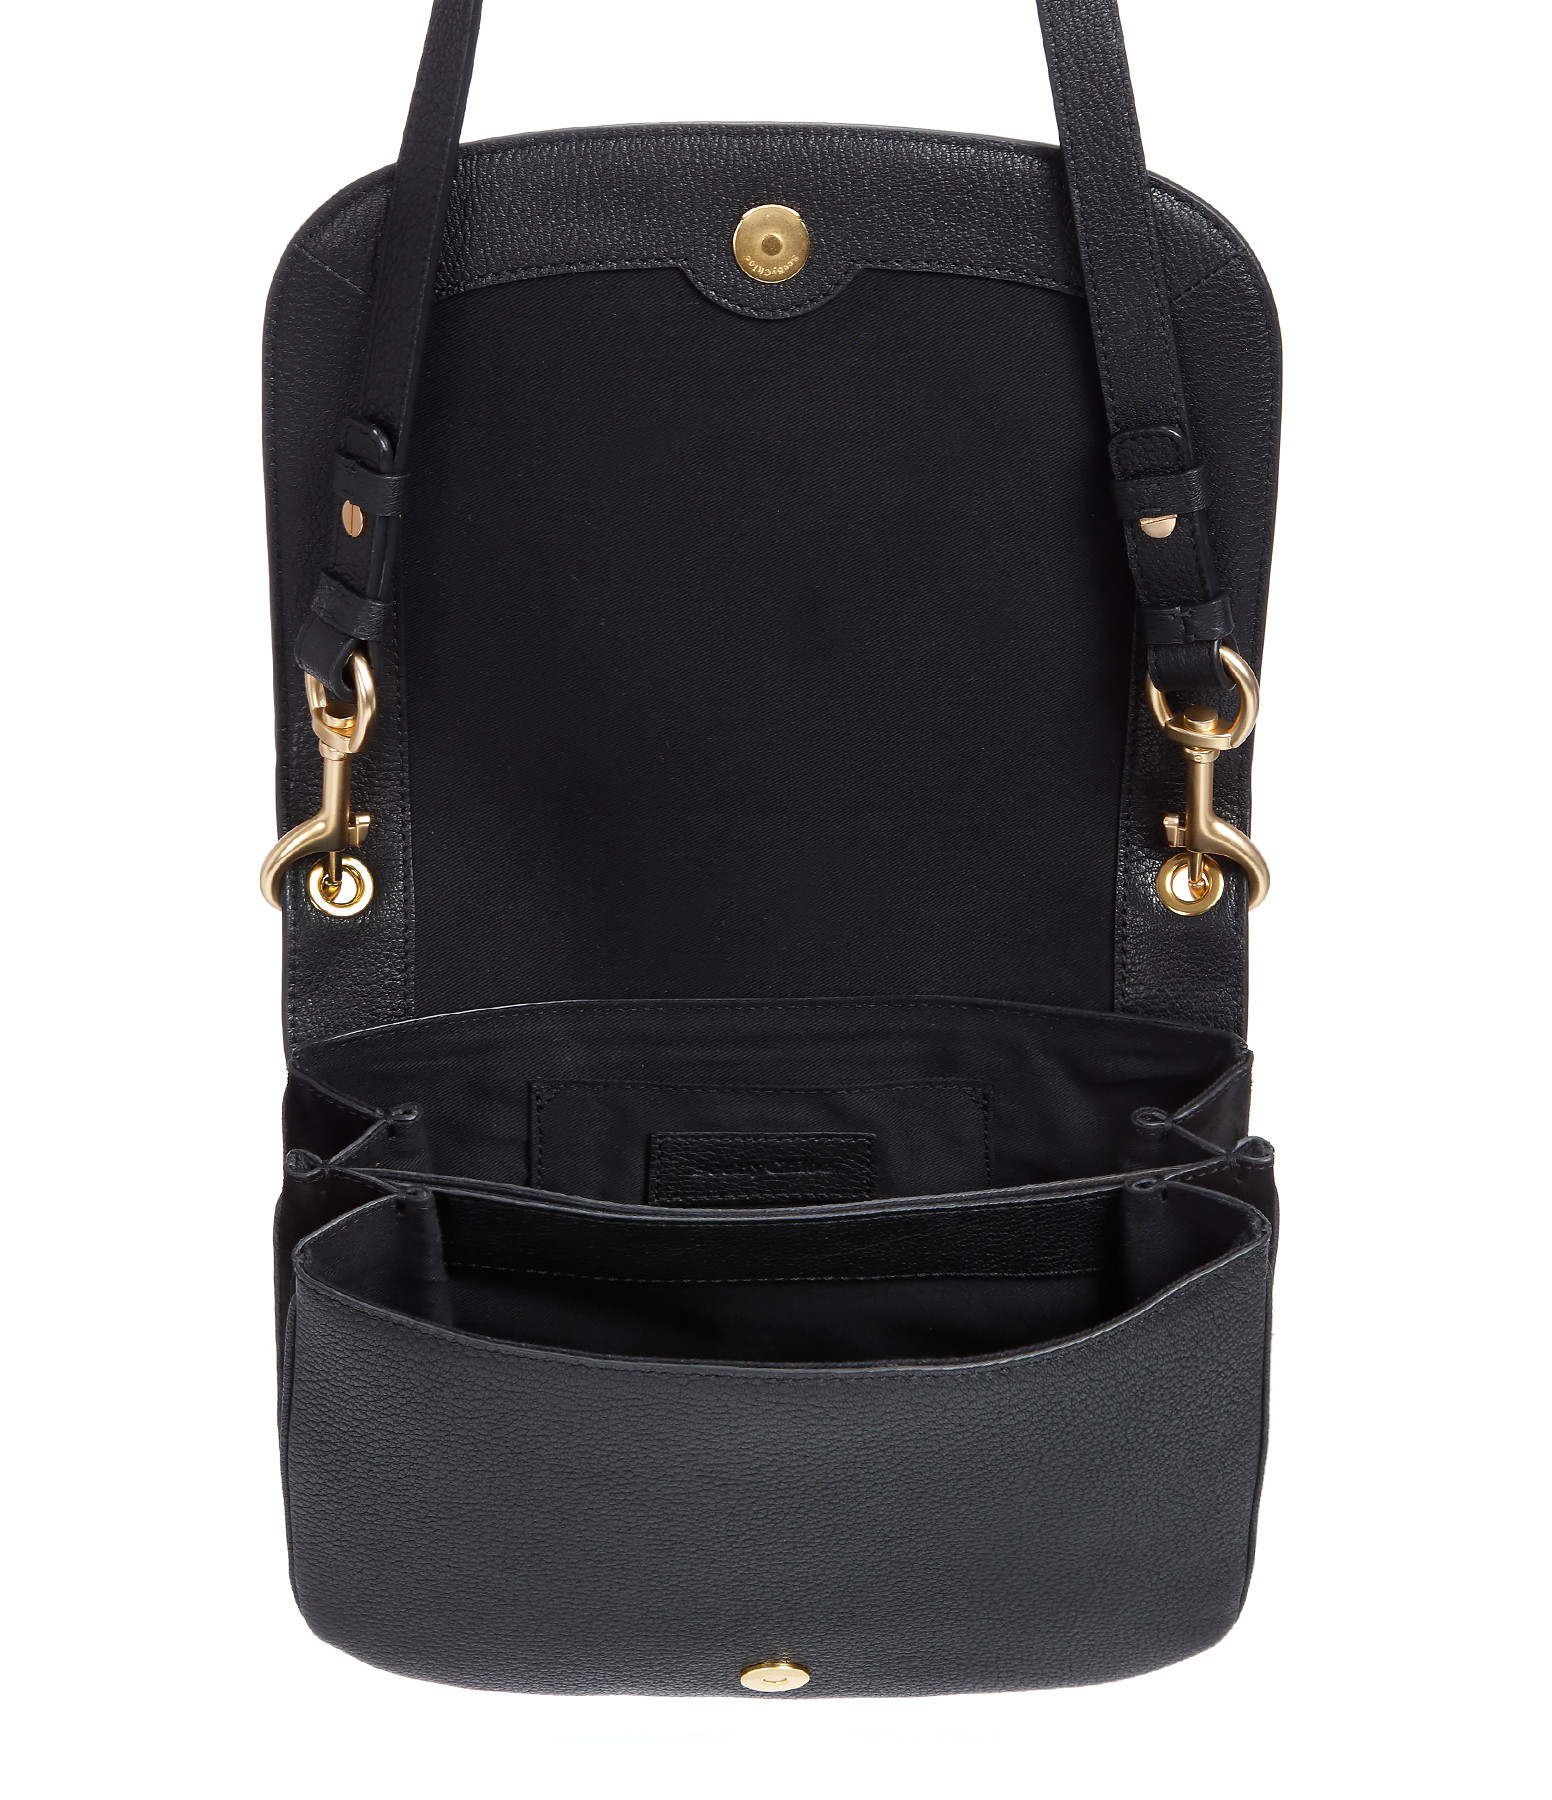 SEE BY CHLOE - Sac Hana GM Double Cuir Noir